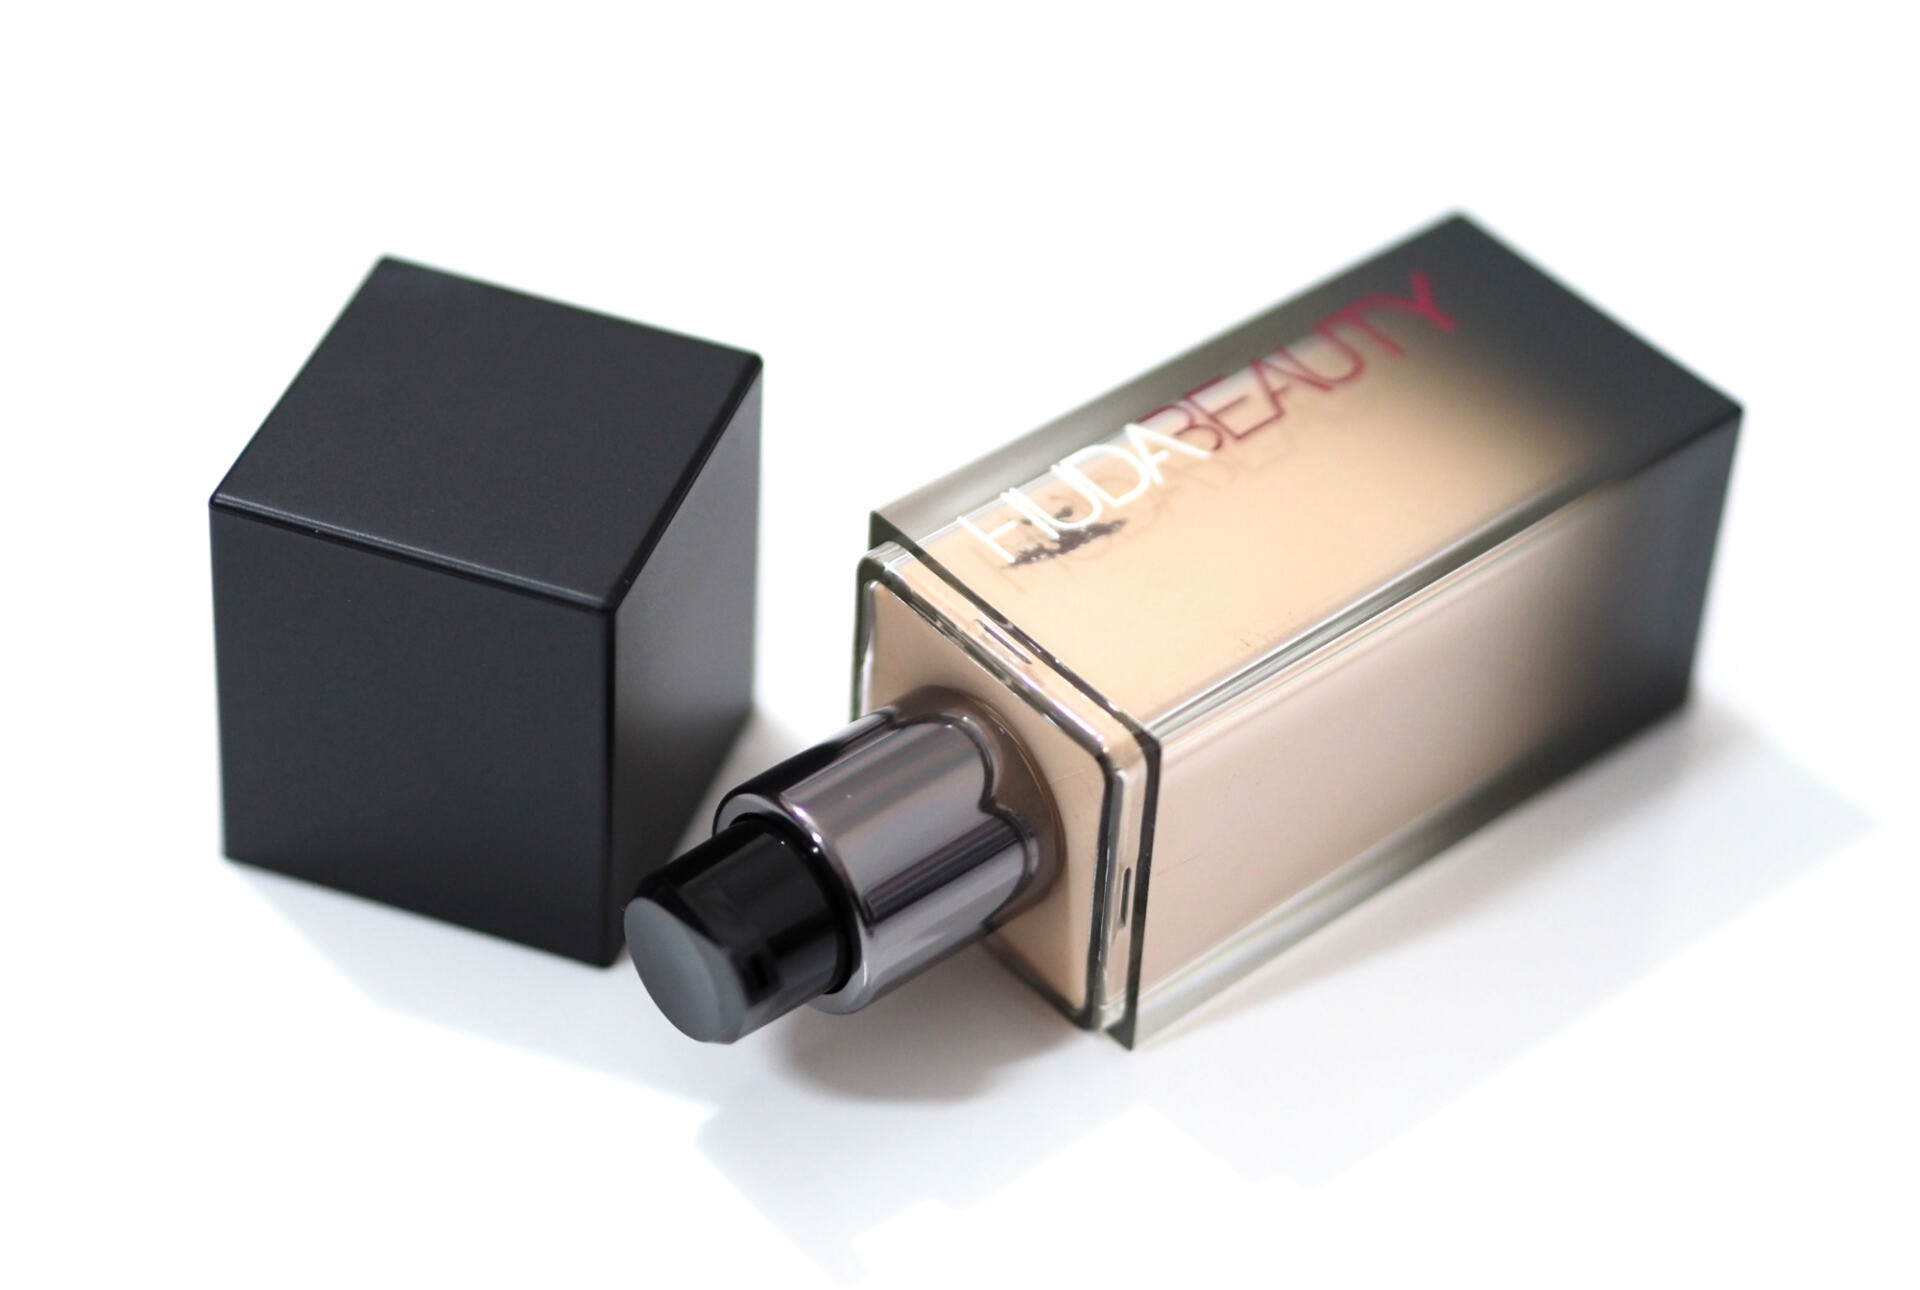 Huda Beauty #FauxFilter Luminous Matte Foundation Review / Swatches